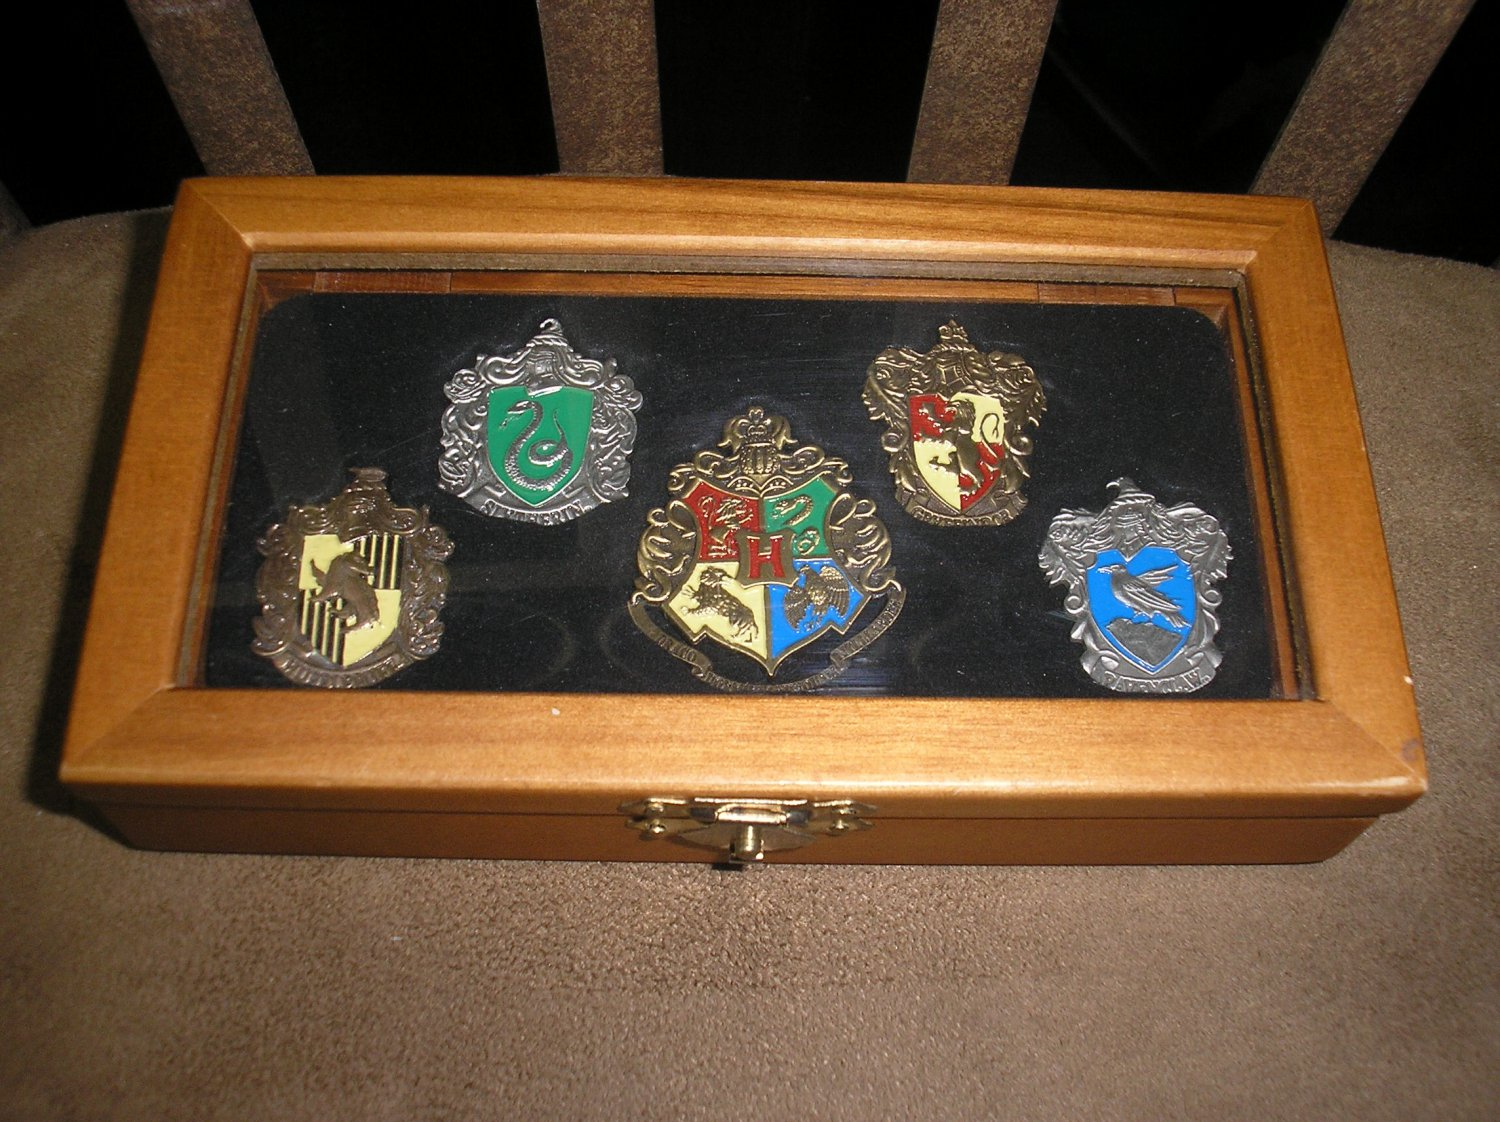 "HARRY POTTER ""HOGWARTS"" CLASS PIN SET by Noble Collection - 5 PINS in WOODEN BOX!"